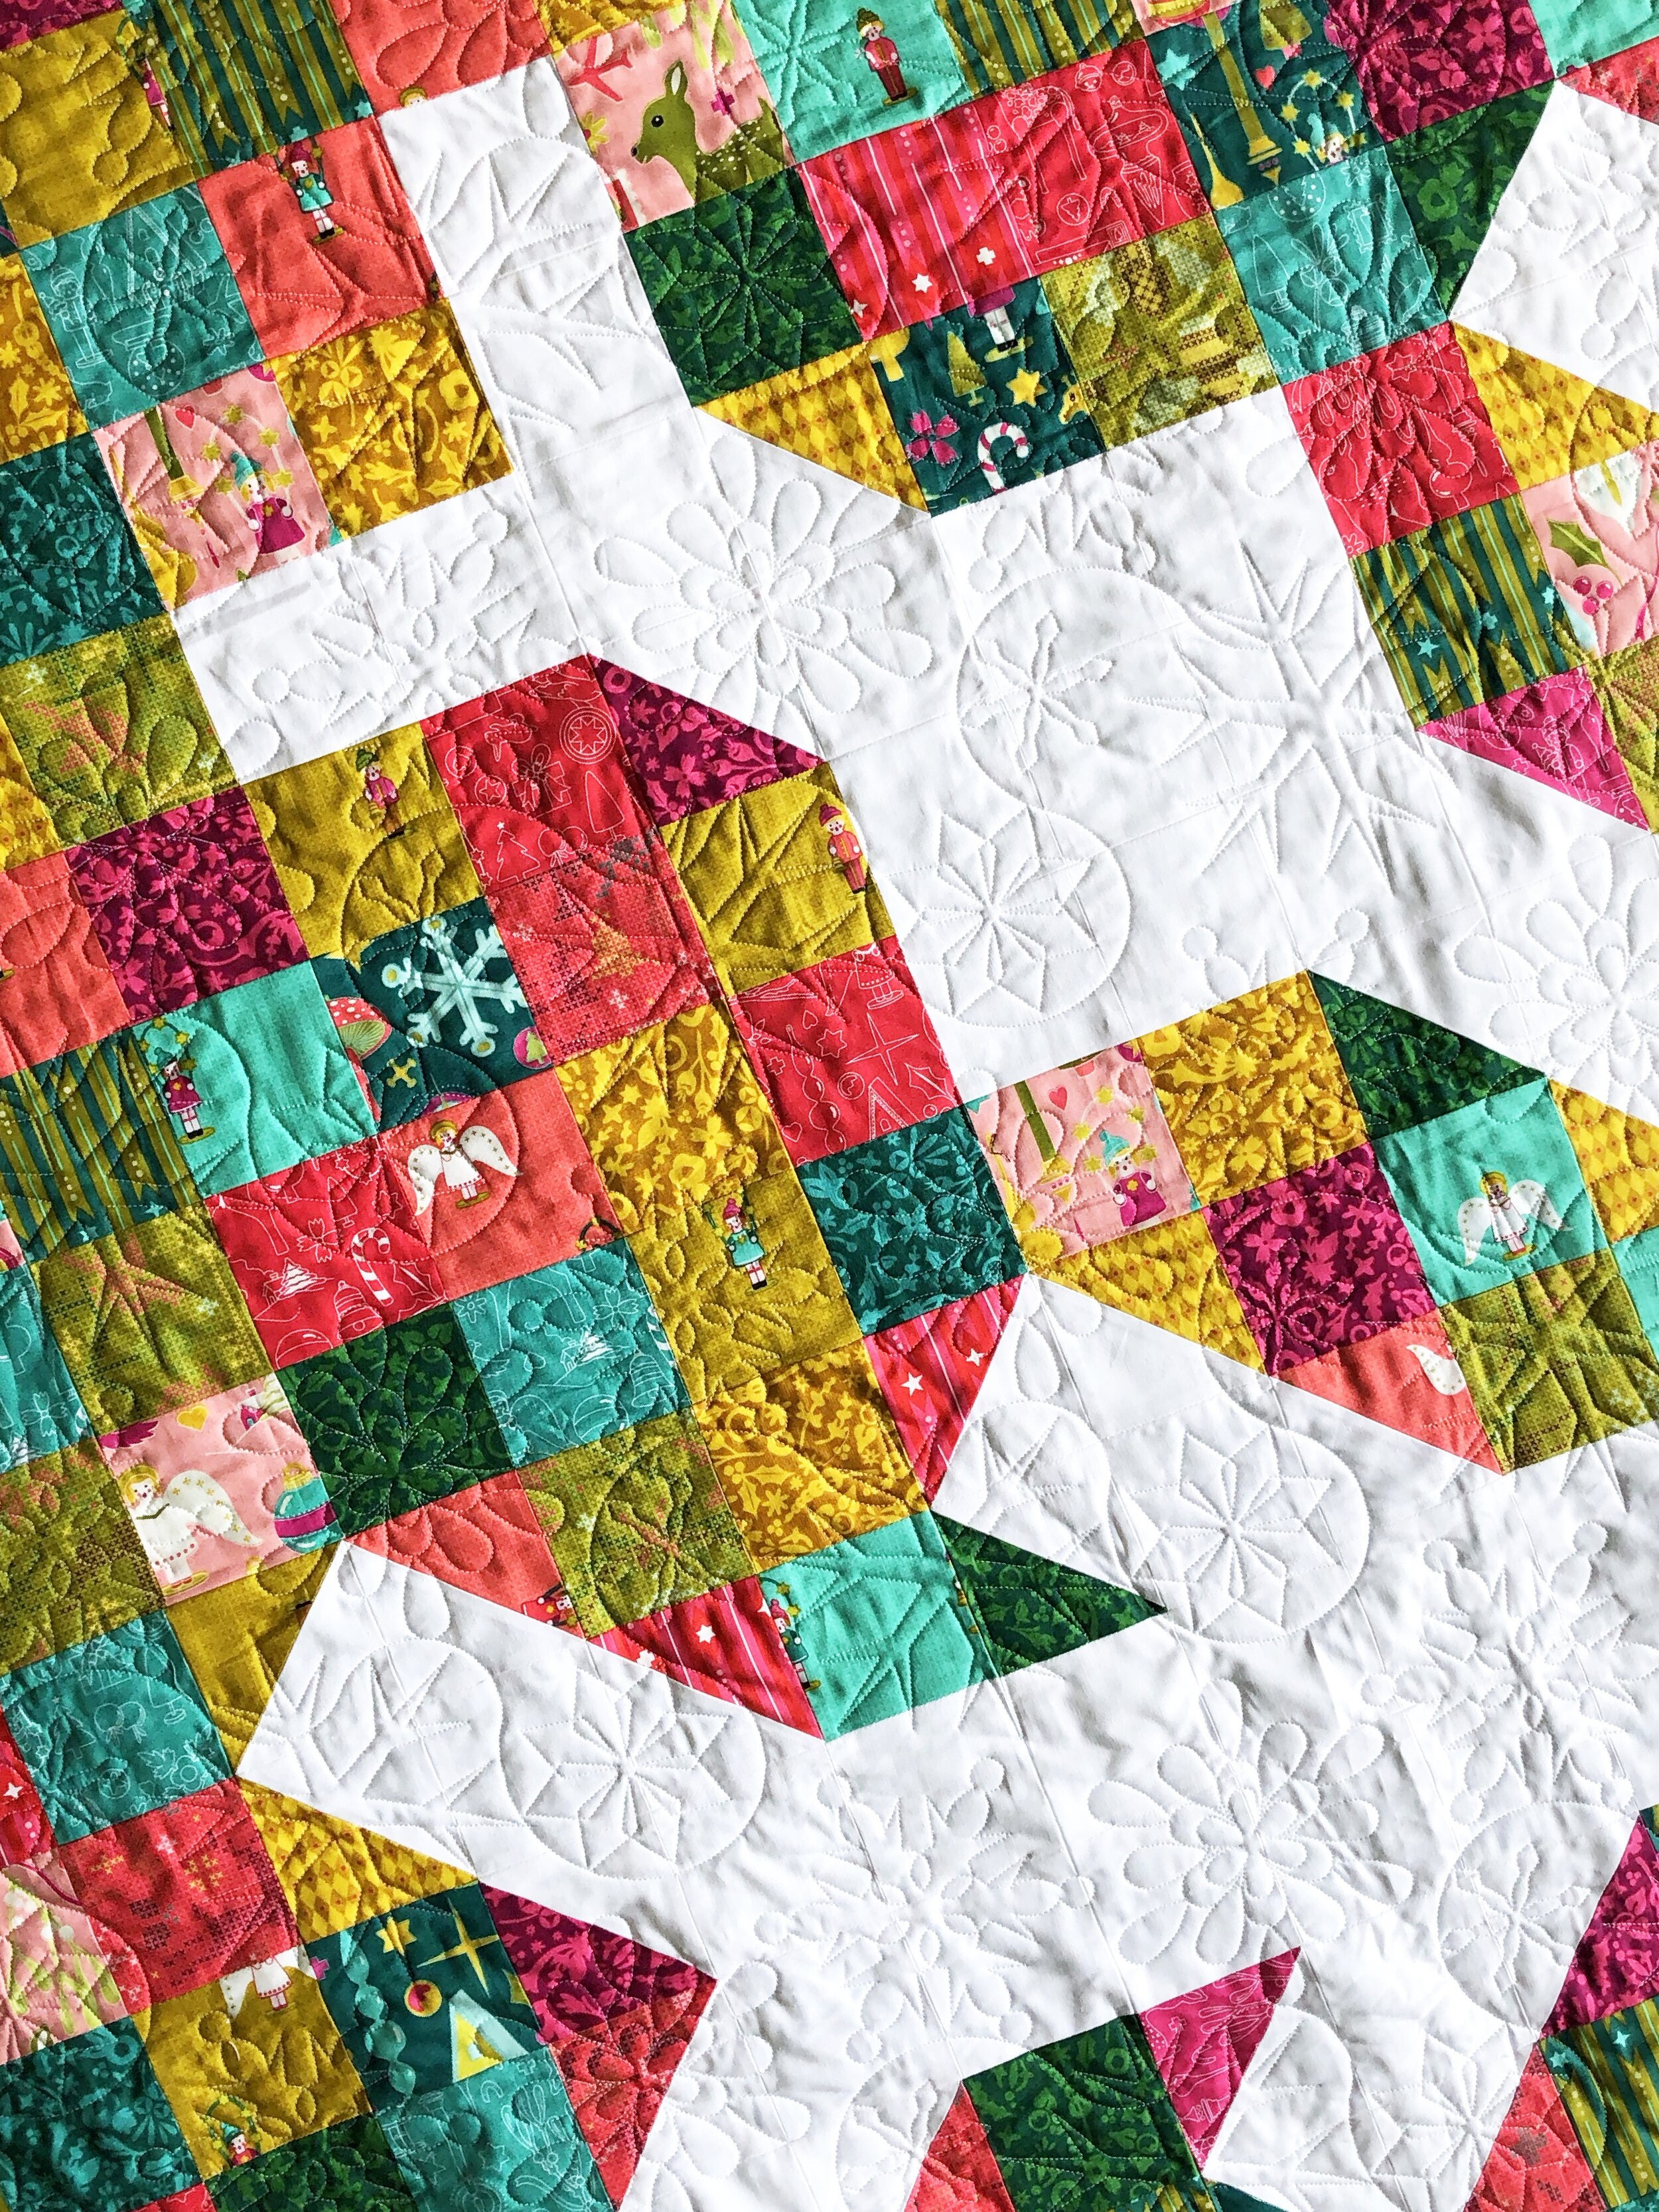 Kaitlyn also quilted this version using a fun snowflake pattern.